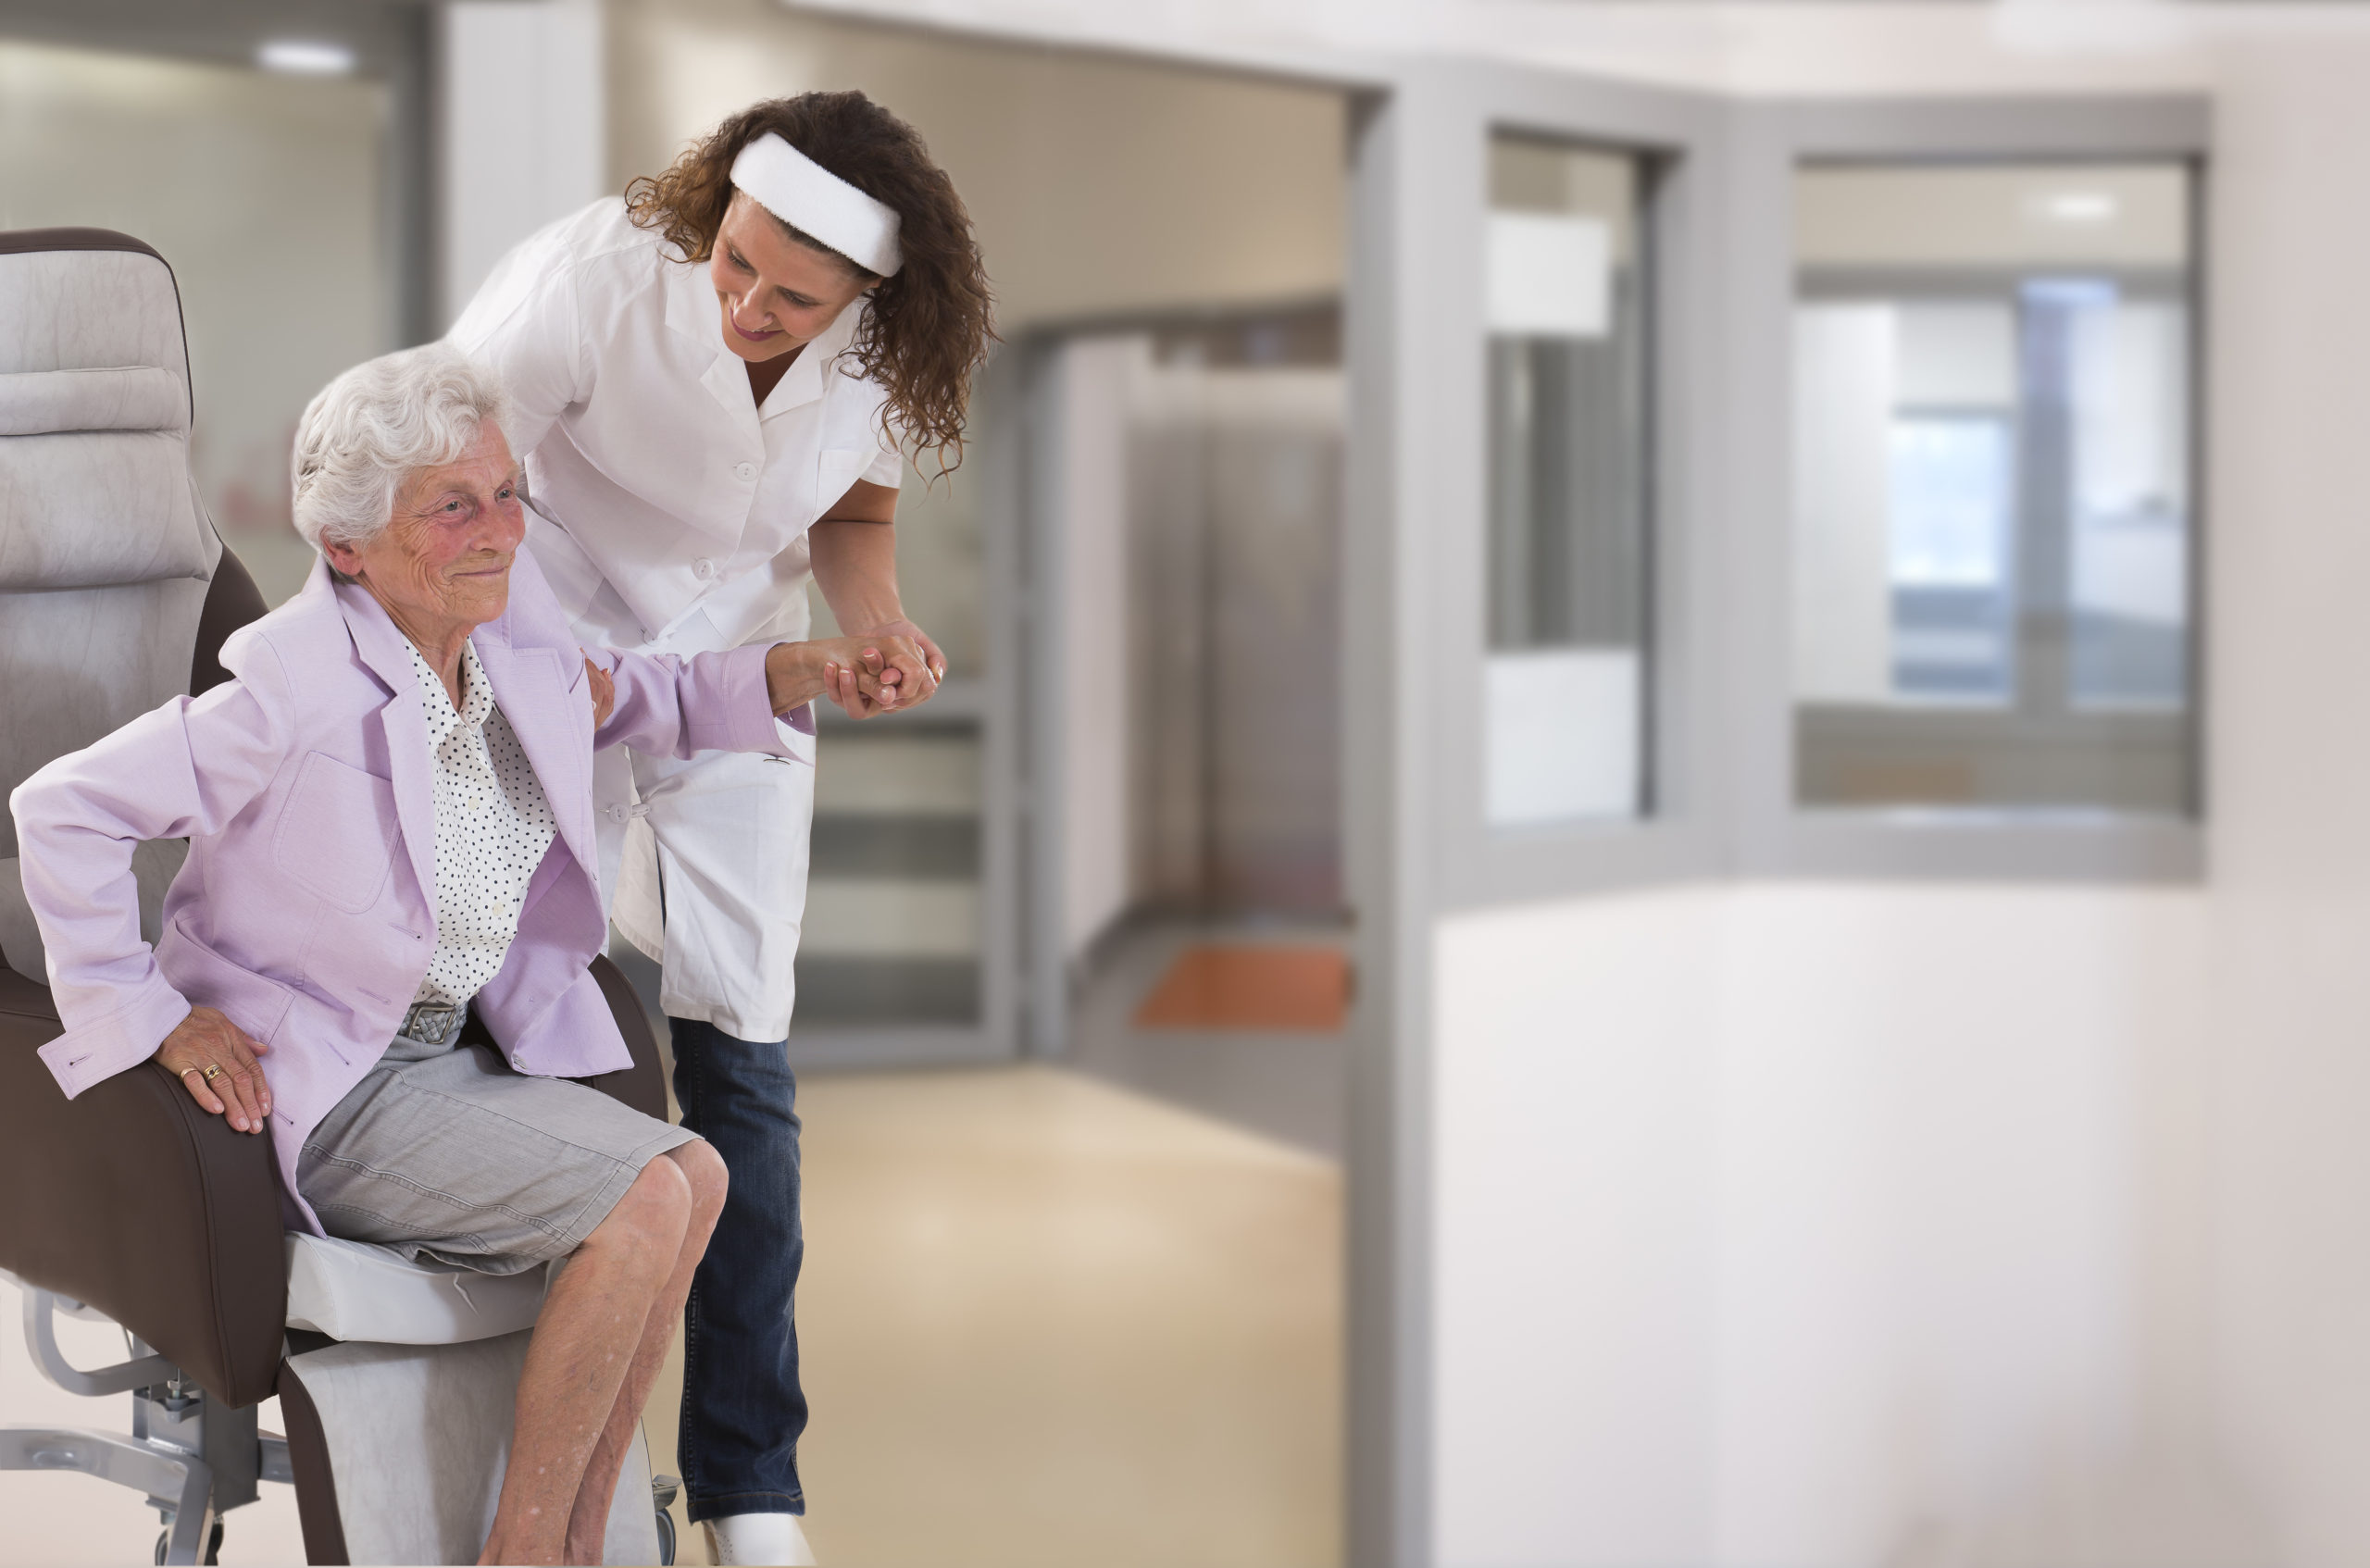 Nurse Helping Disabled Lady In Getting Up In Large, Windows, Background, Coridor